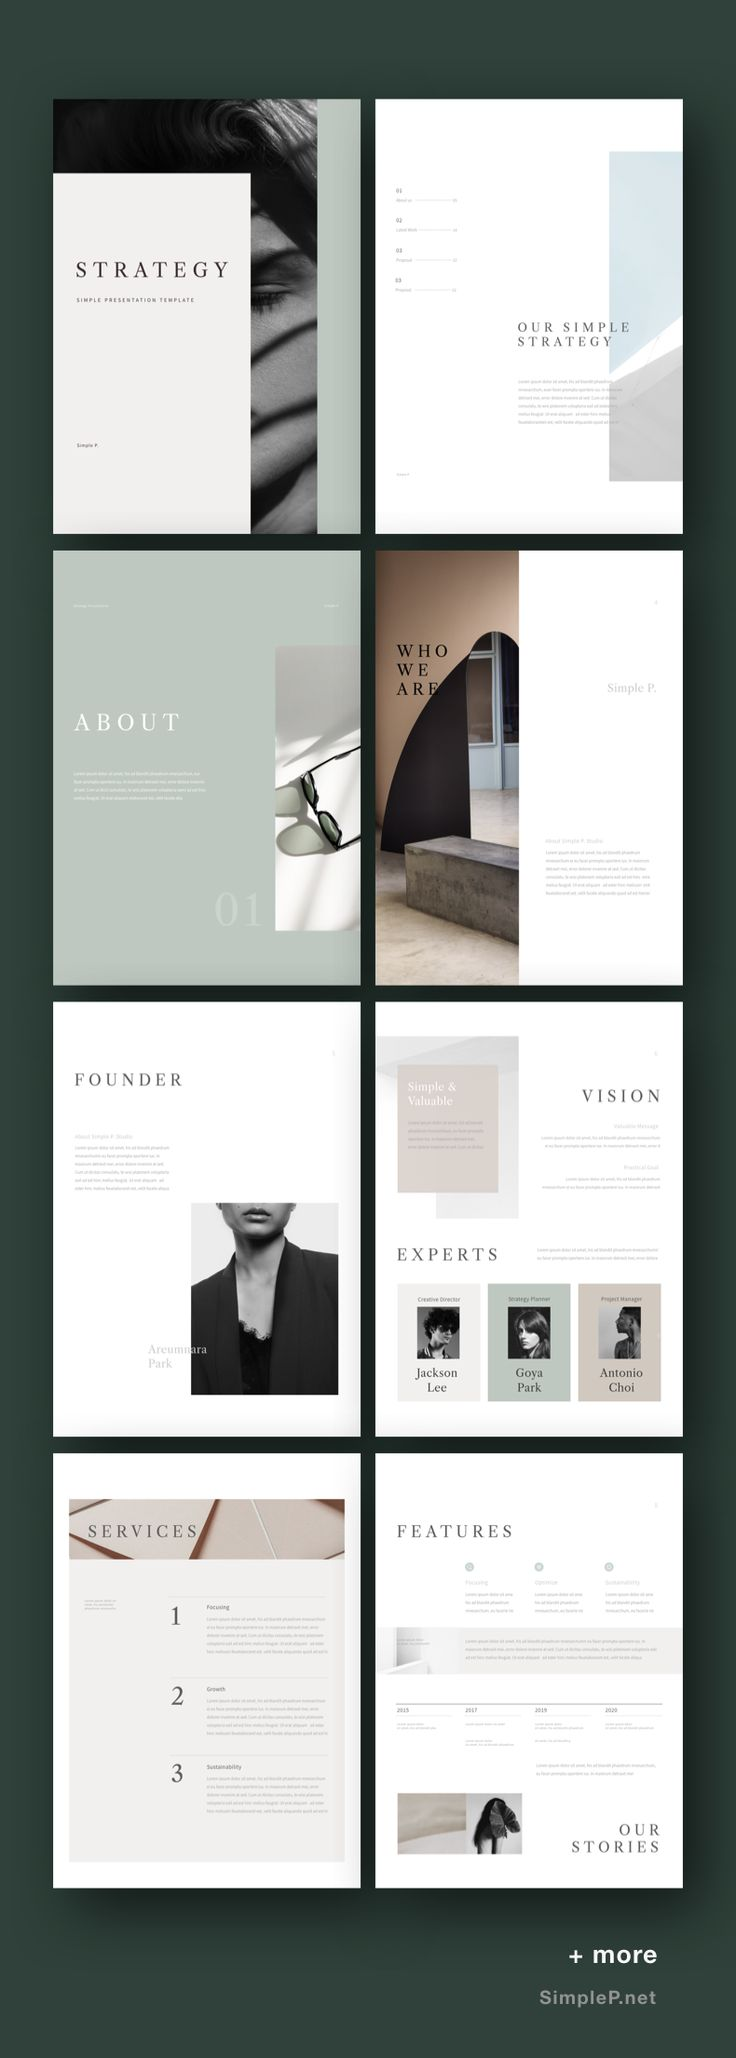 Strategy Vertical Presentation Template #ppt #powe…